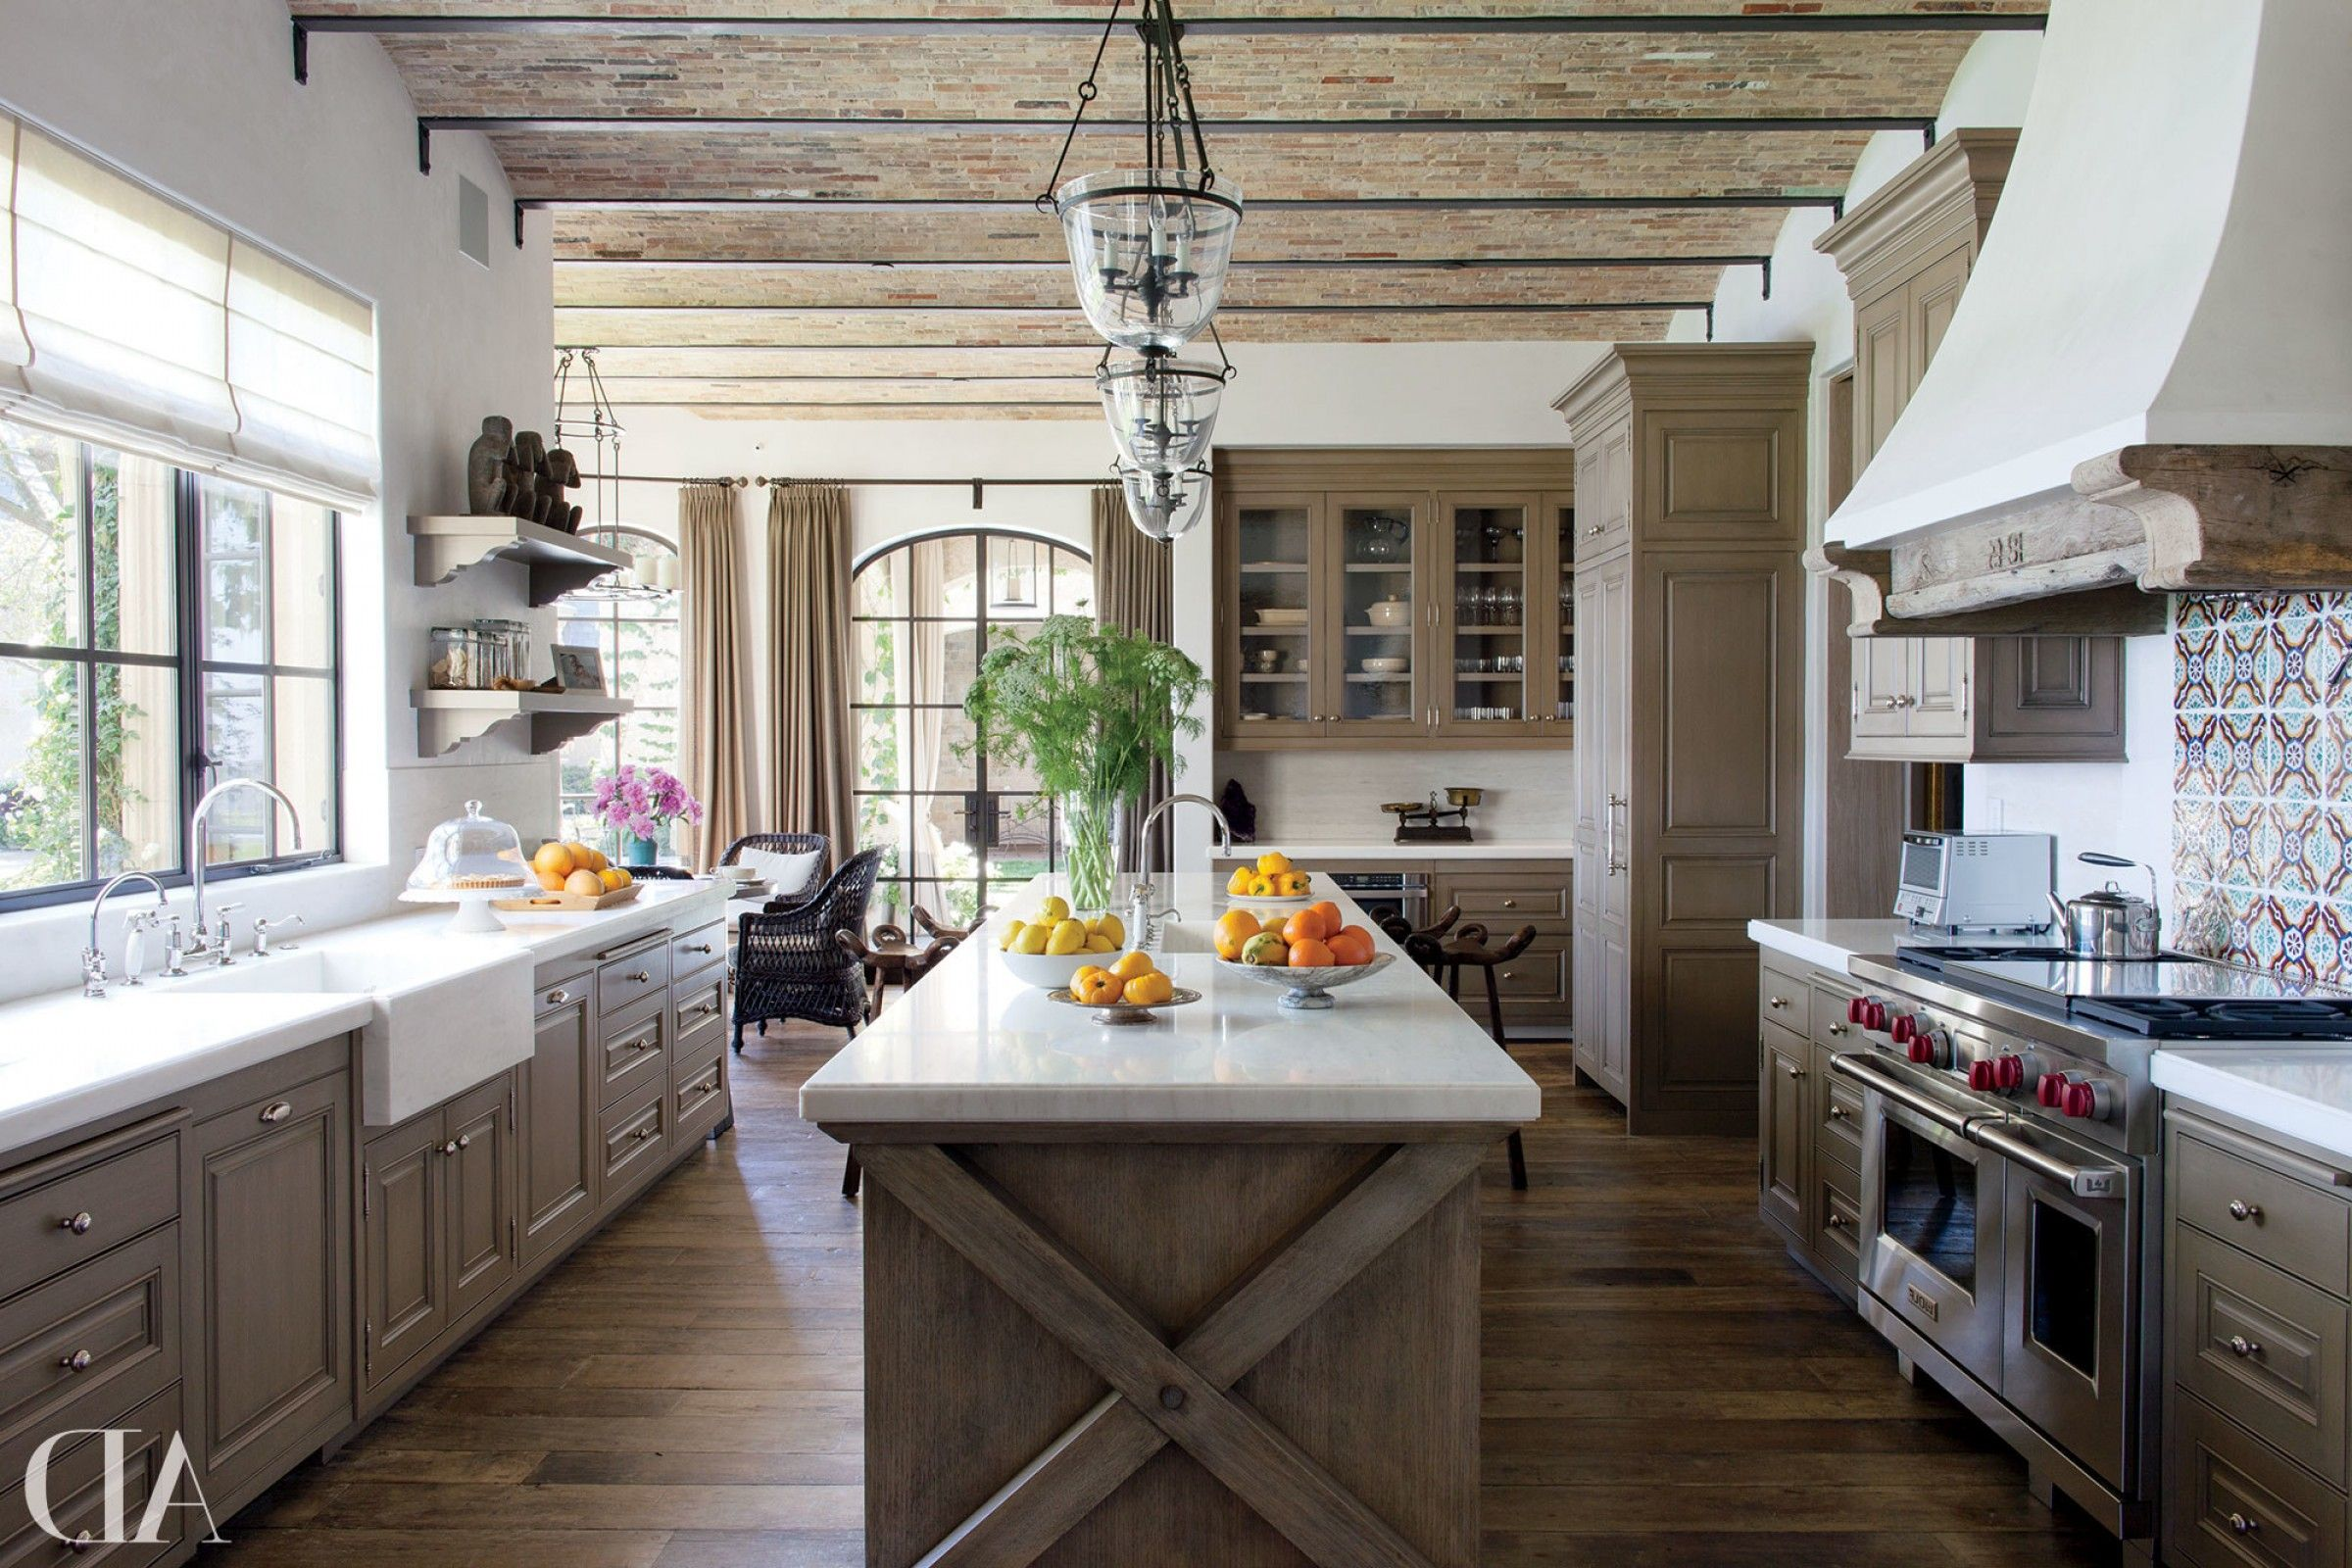 Modern Rustic Farmhouse Kitchen Rustic Farmhouse Kitchen Ideas  Home Design Ideas